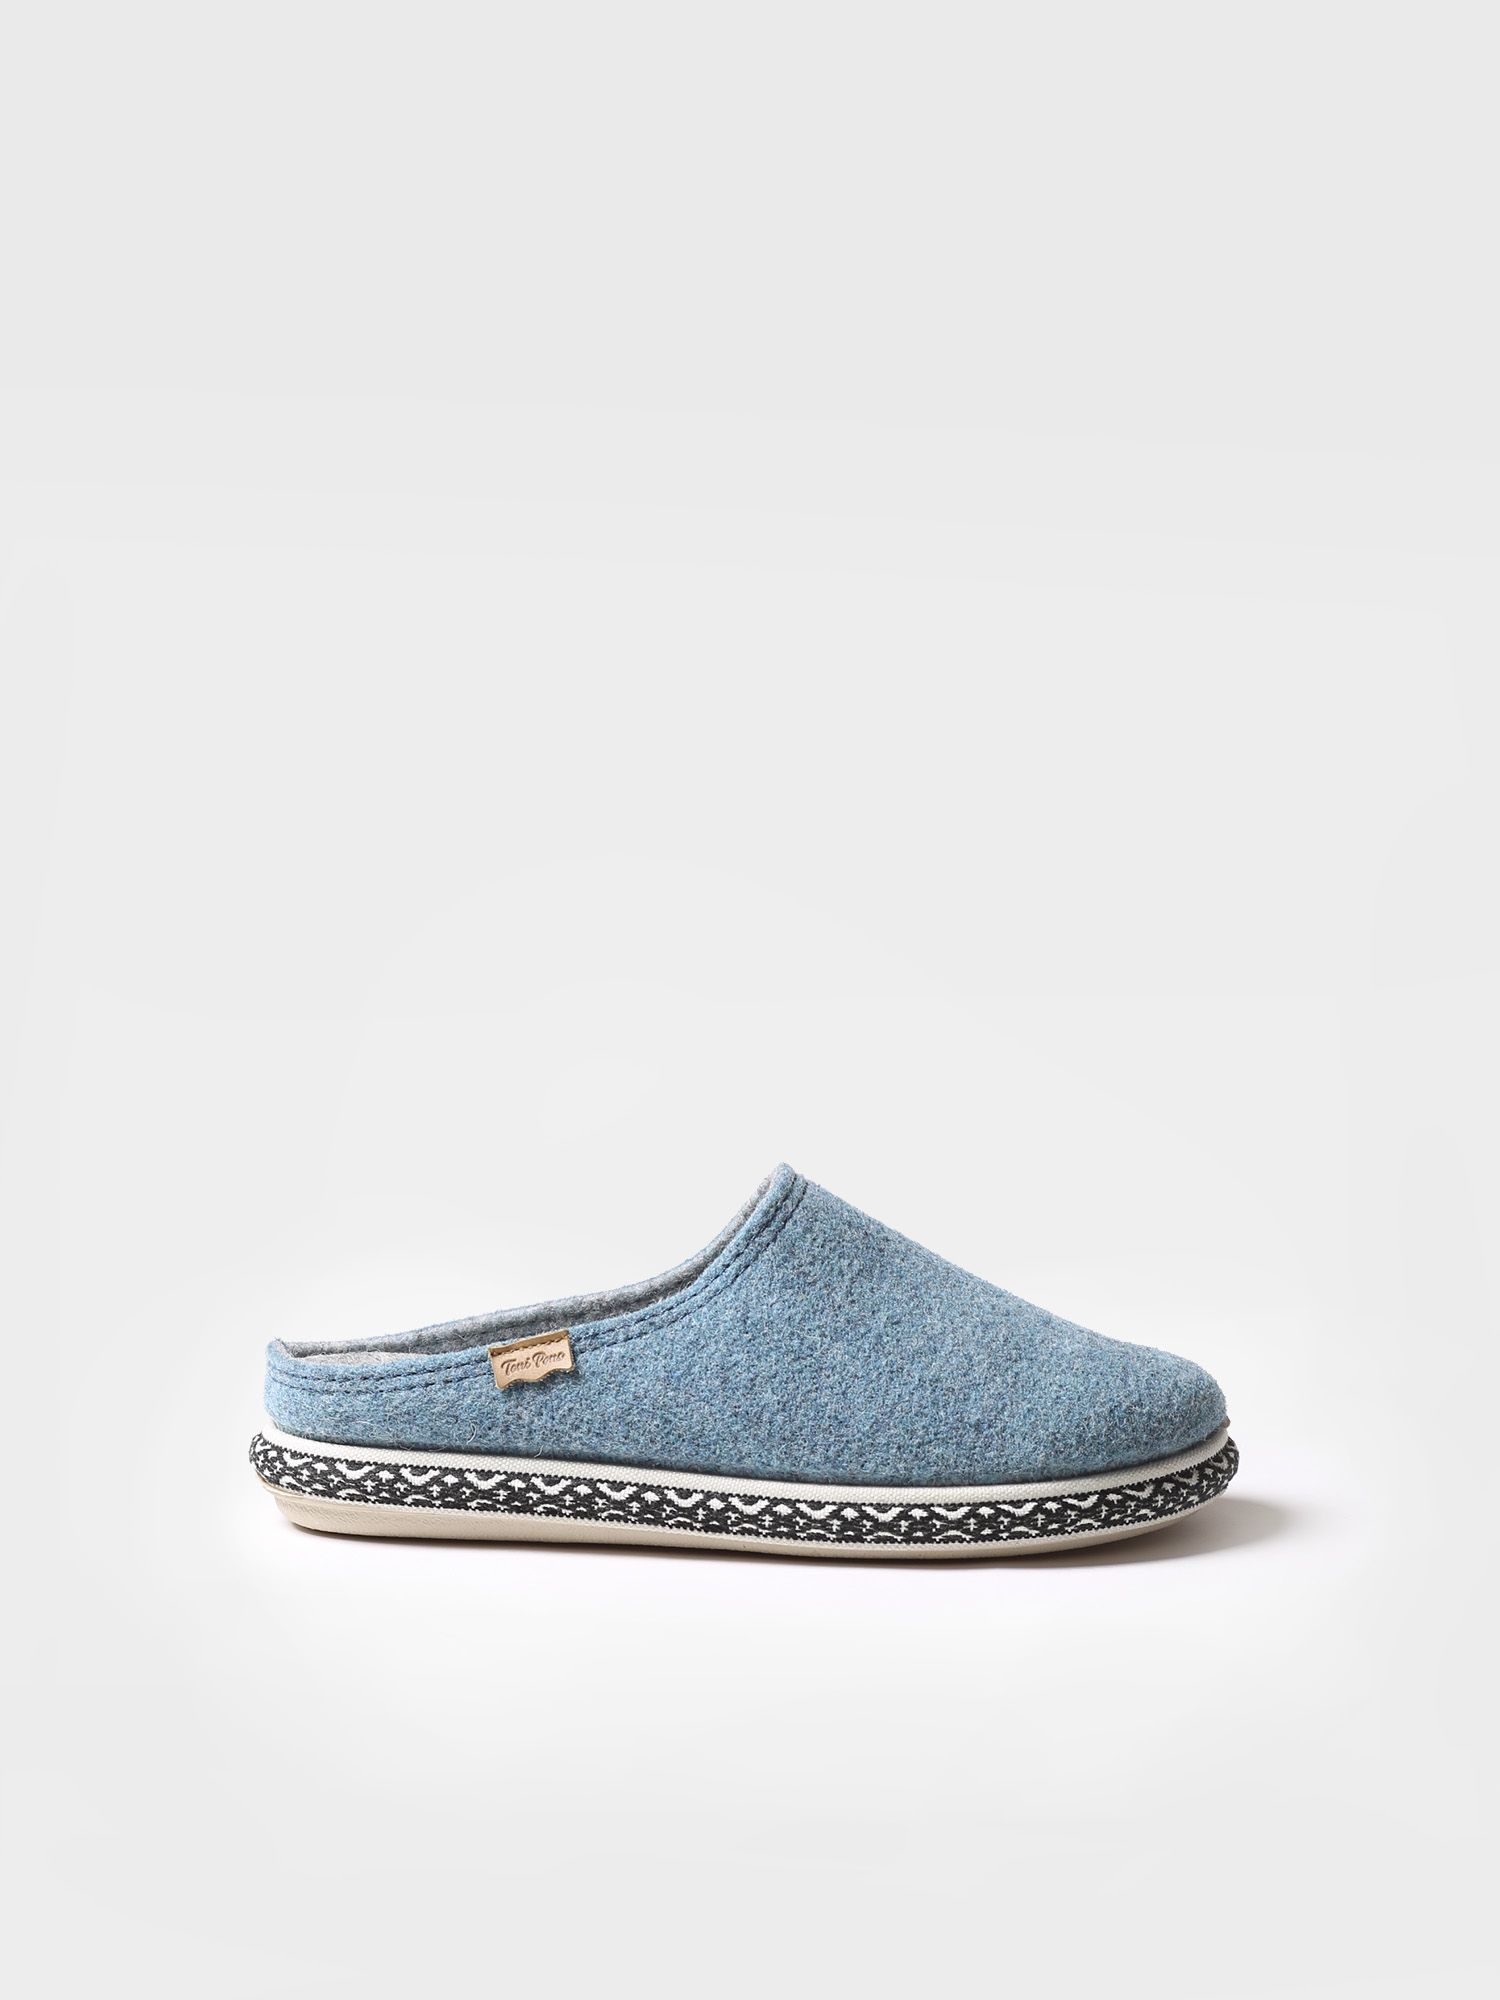 Slipper for woman made of felt - MIRI-CD